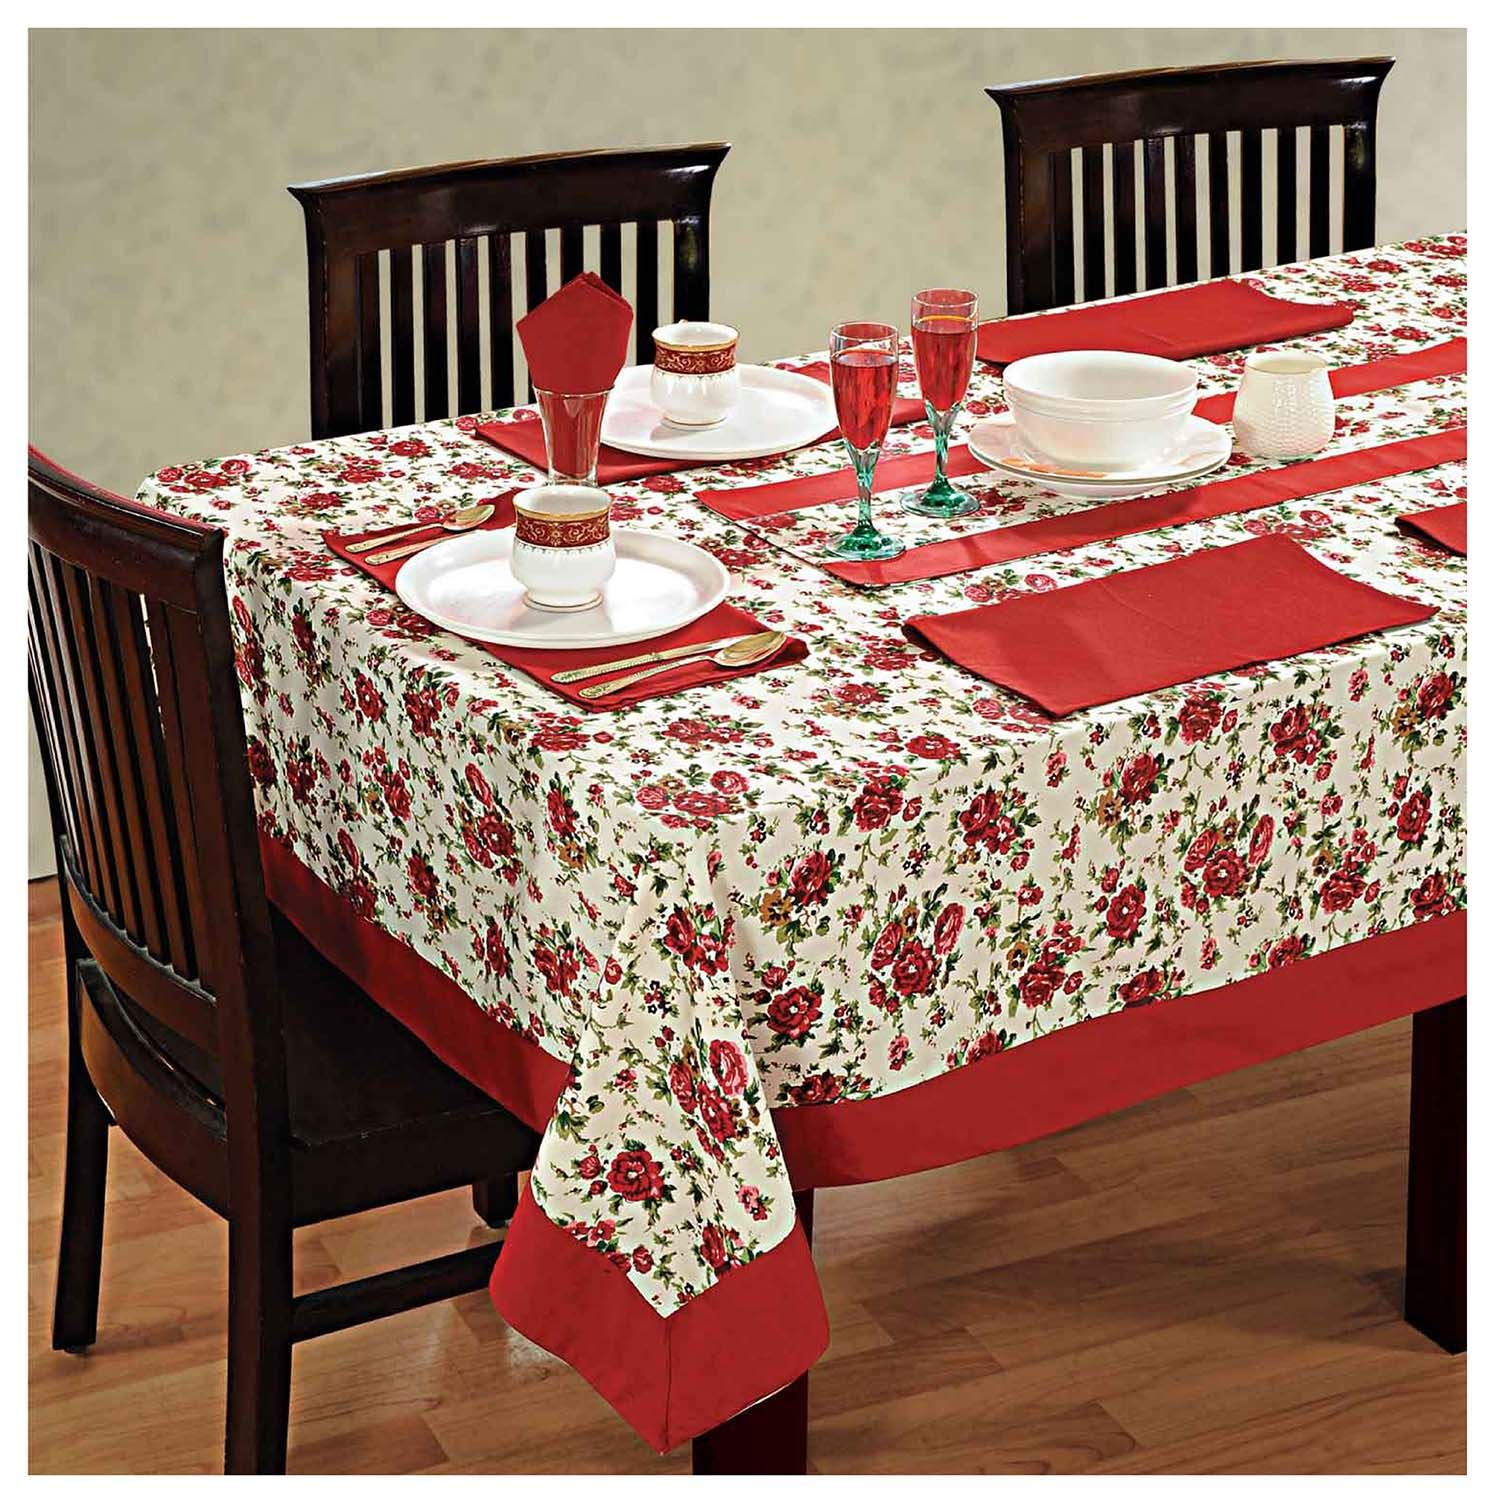 Dinner Party Table Linen Set 6 Seater Kitchen Dining  : 3f7de784 1d41 41a3 9c5e 5d35f8bdbdc5 from www.ebay.co.uk size 1500 x 1500 jpeg 375kB